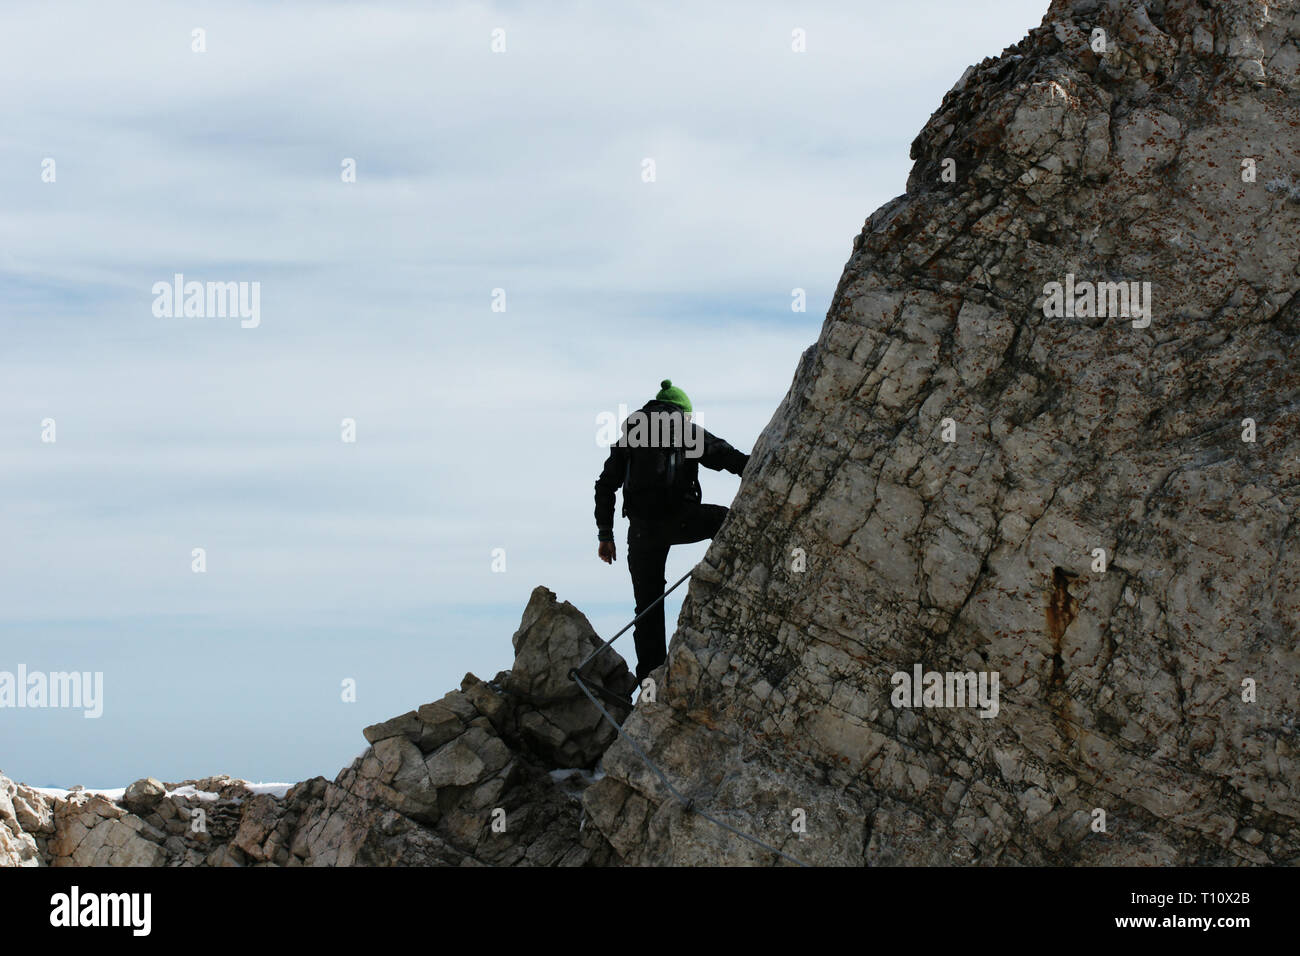 climbing in the alps - Stock Image